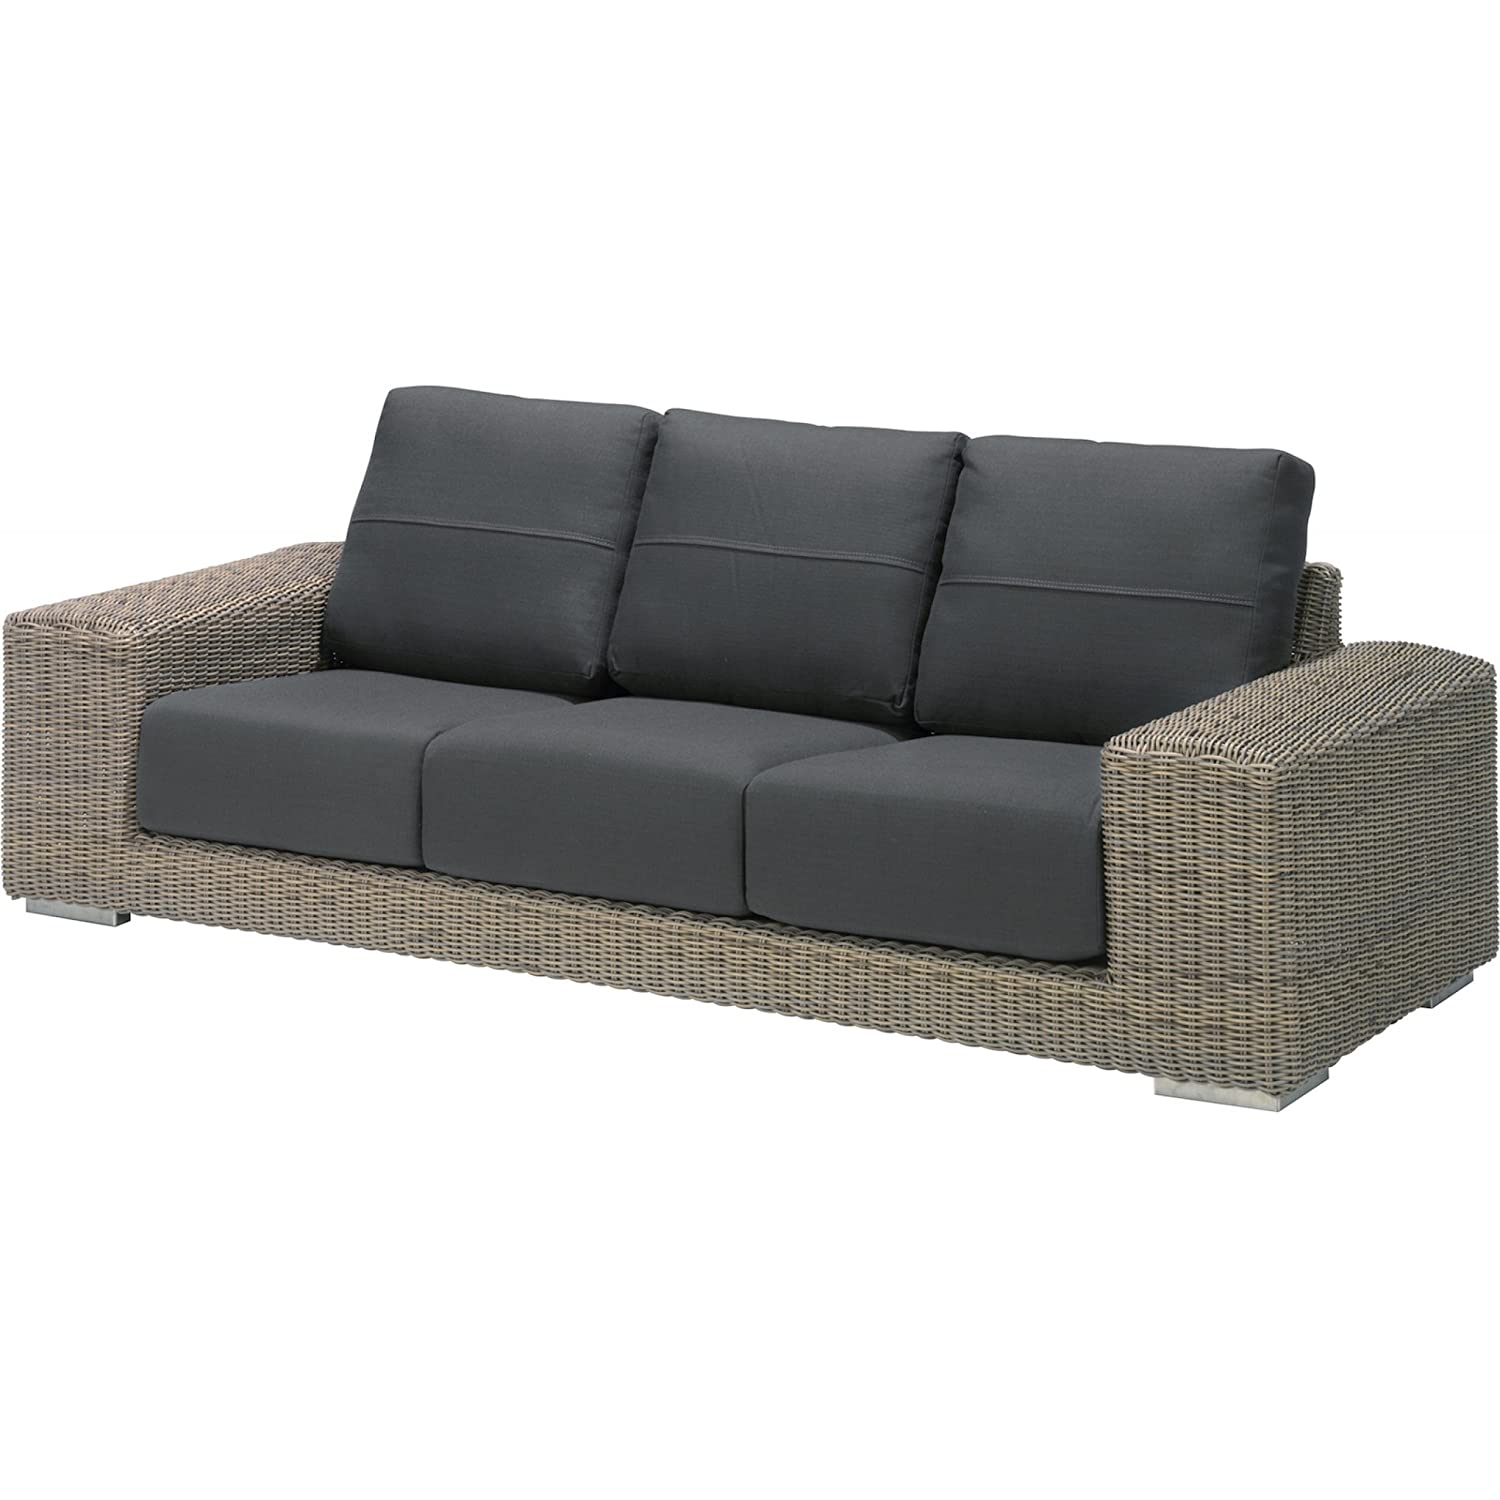 4Seasons Outdoor Kingston 3-Sitzer Loungesofa Polyrattan pure inkl 6 Kissen